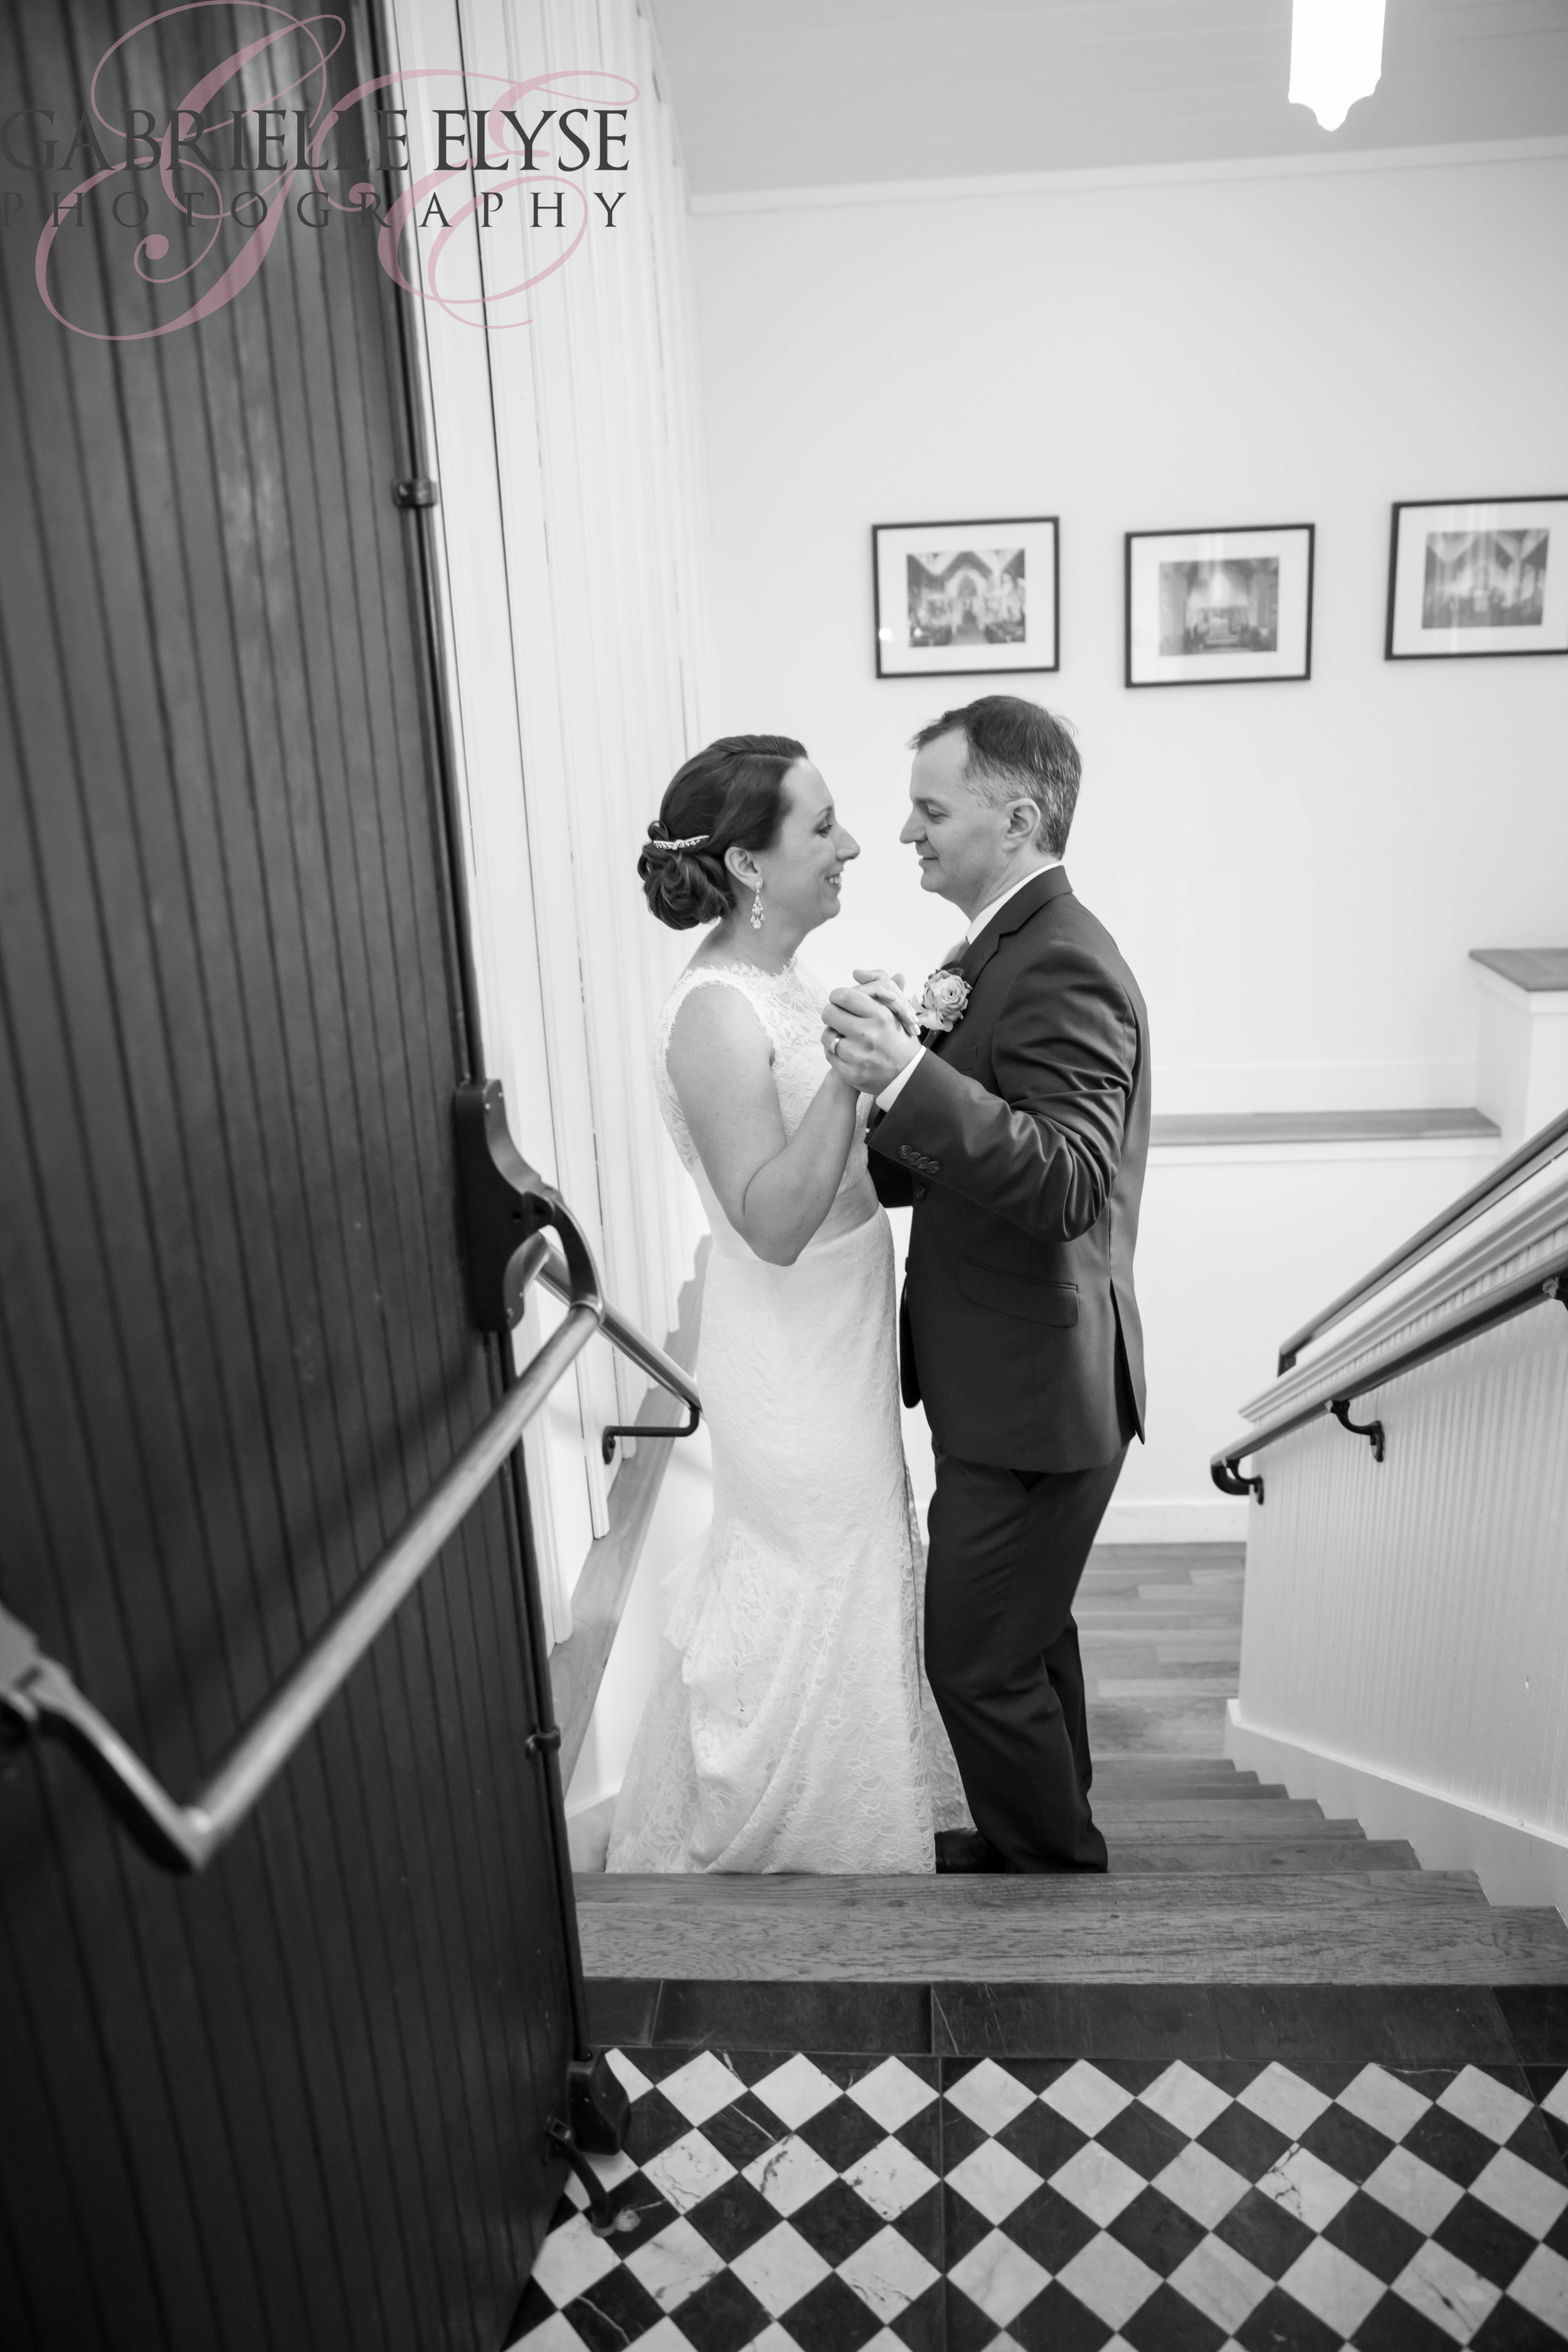 Sometimes thing happen when you least expect them and you have to be ready with camera in hand for anything- just like this moment!